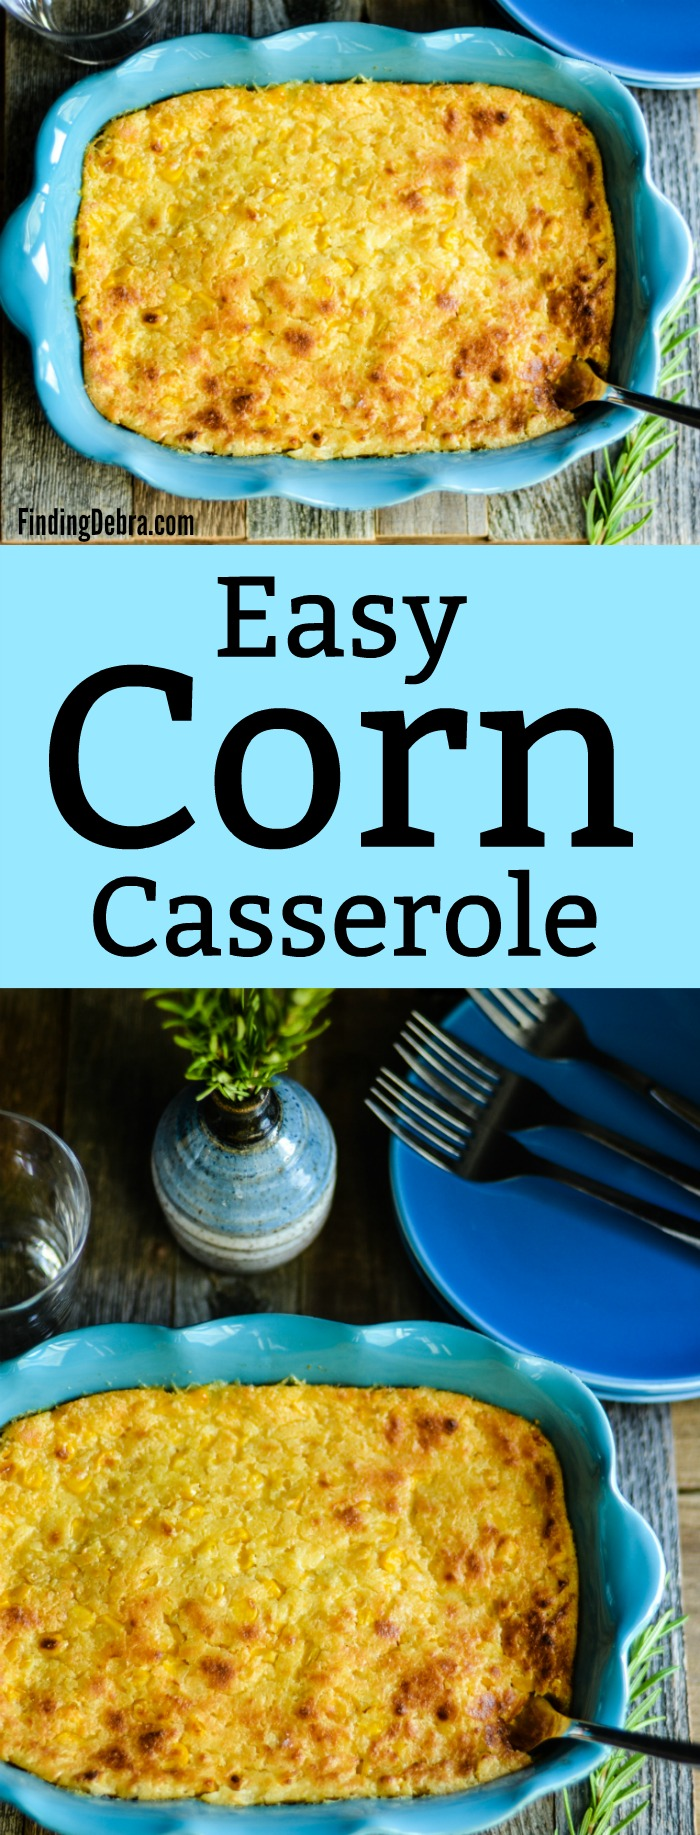 Easy Corn Casserole recipe